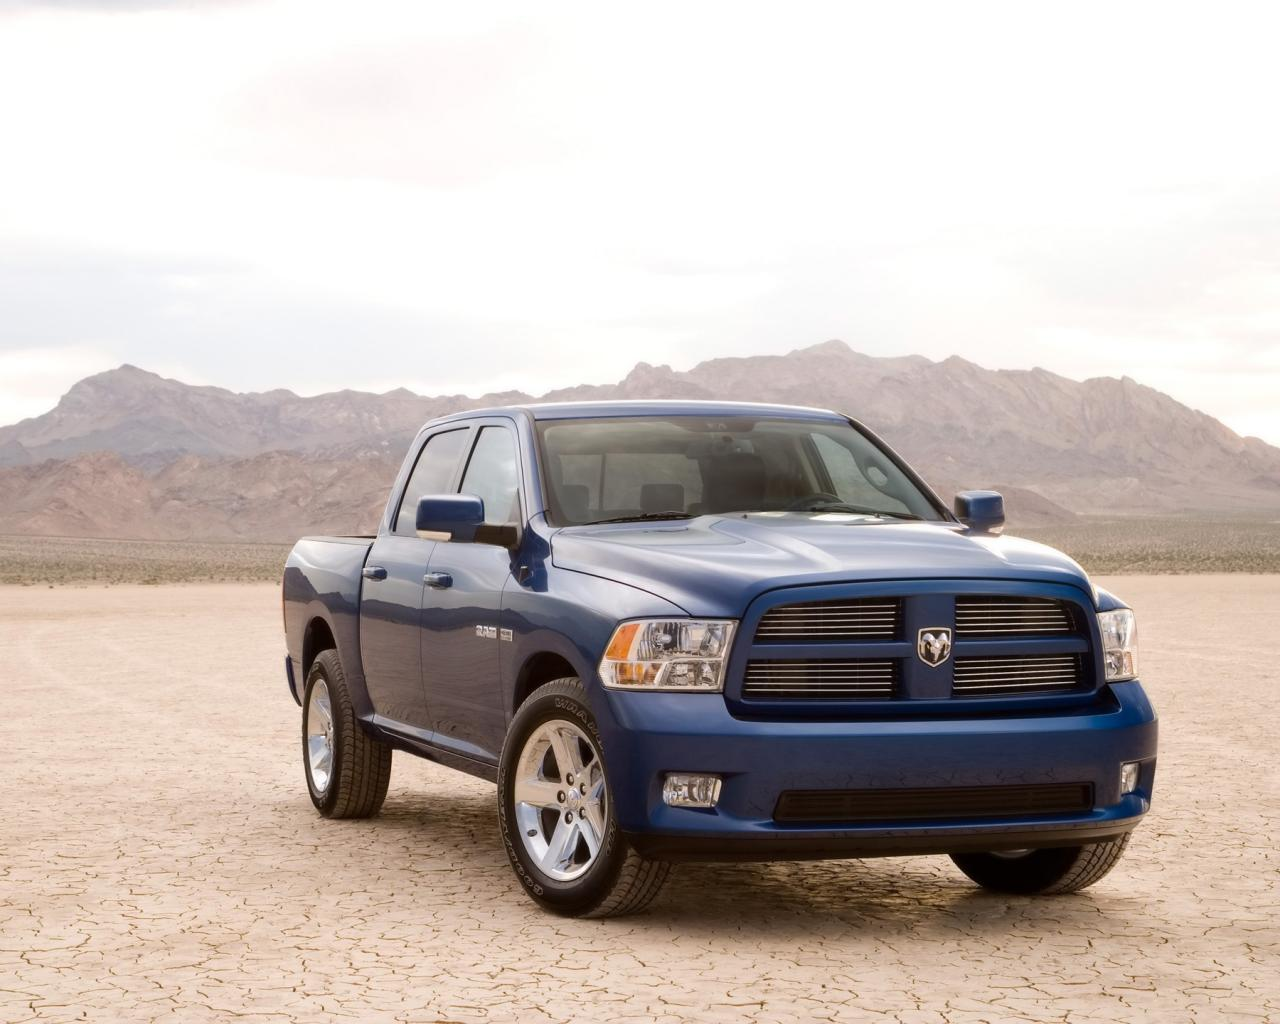 2009 Dodge Ram Sport Front Angle 1280x1024